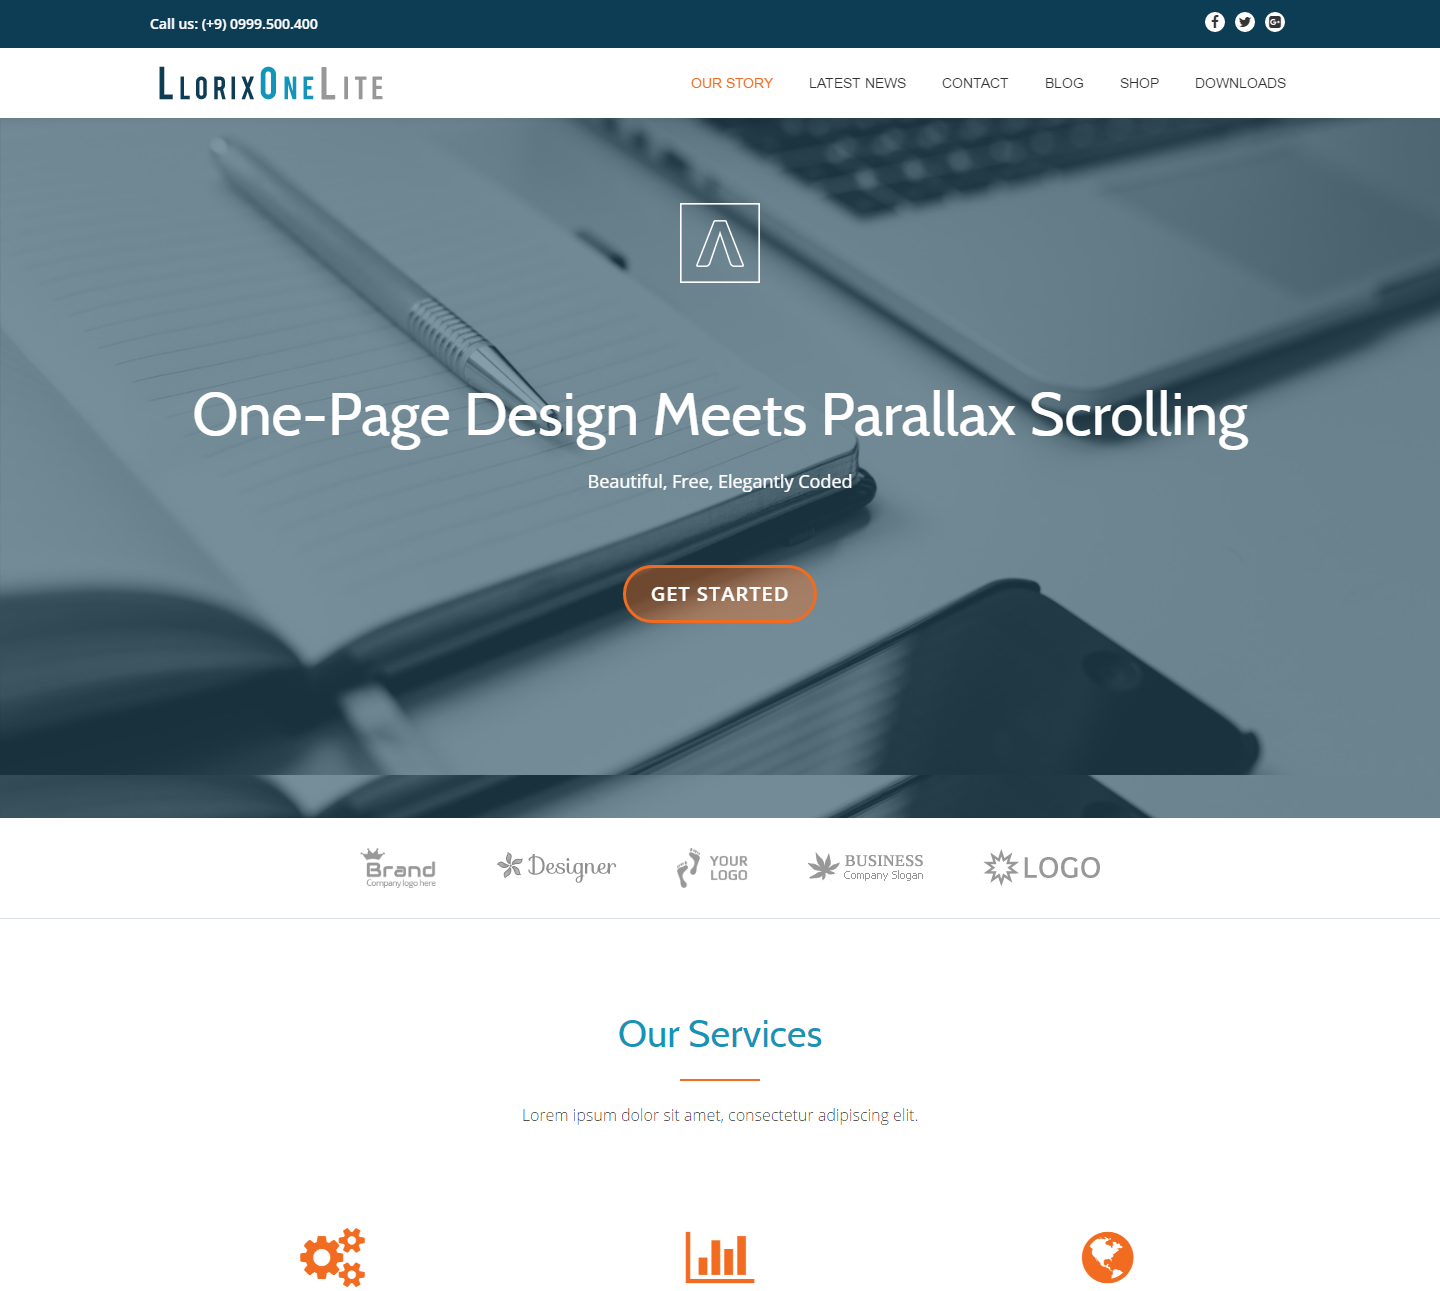 llorix-one-lite-free-wordpress-theme